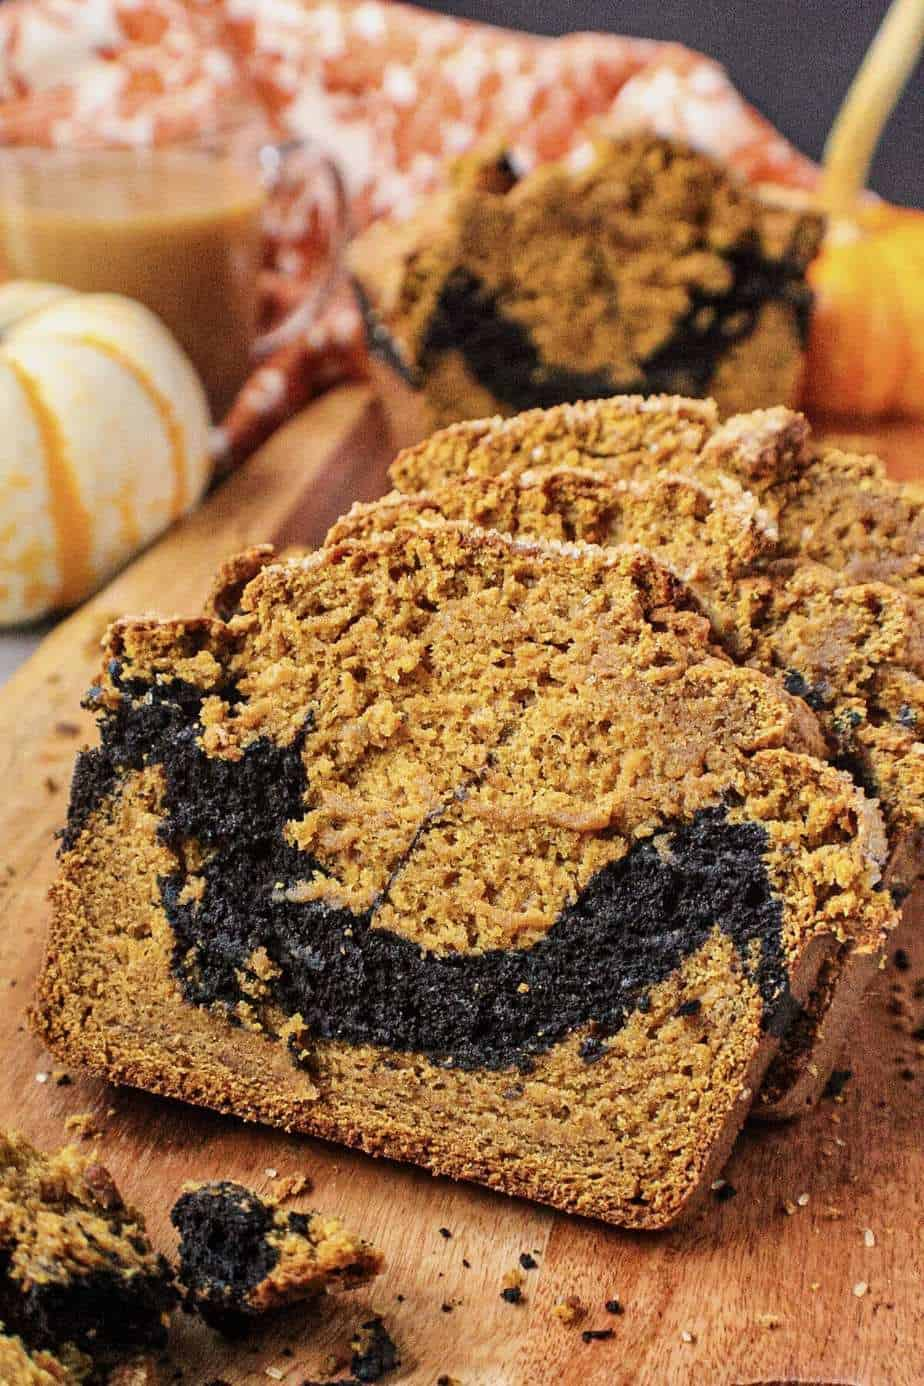 side shot of chocolate marble pumpkin bread on wooden board with orange floral towel and pumpkins in shot perimeter